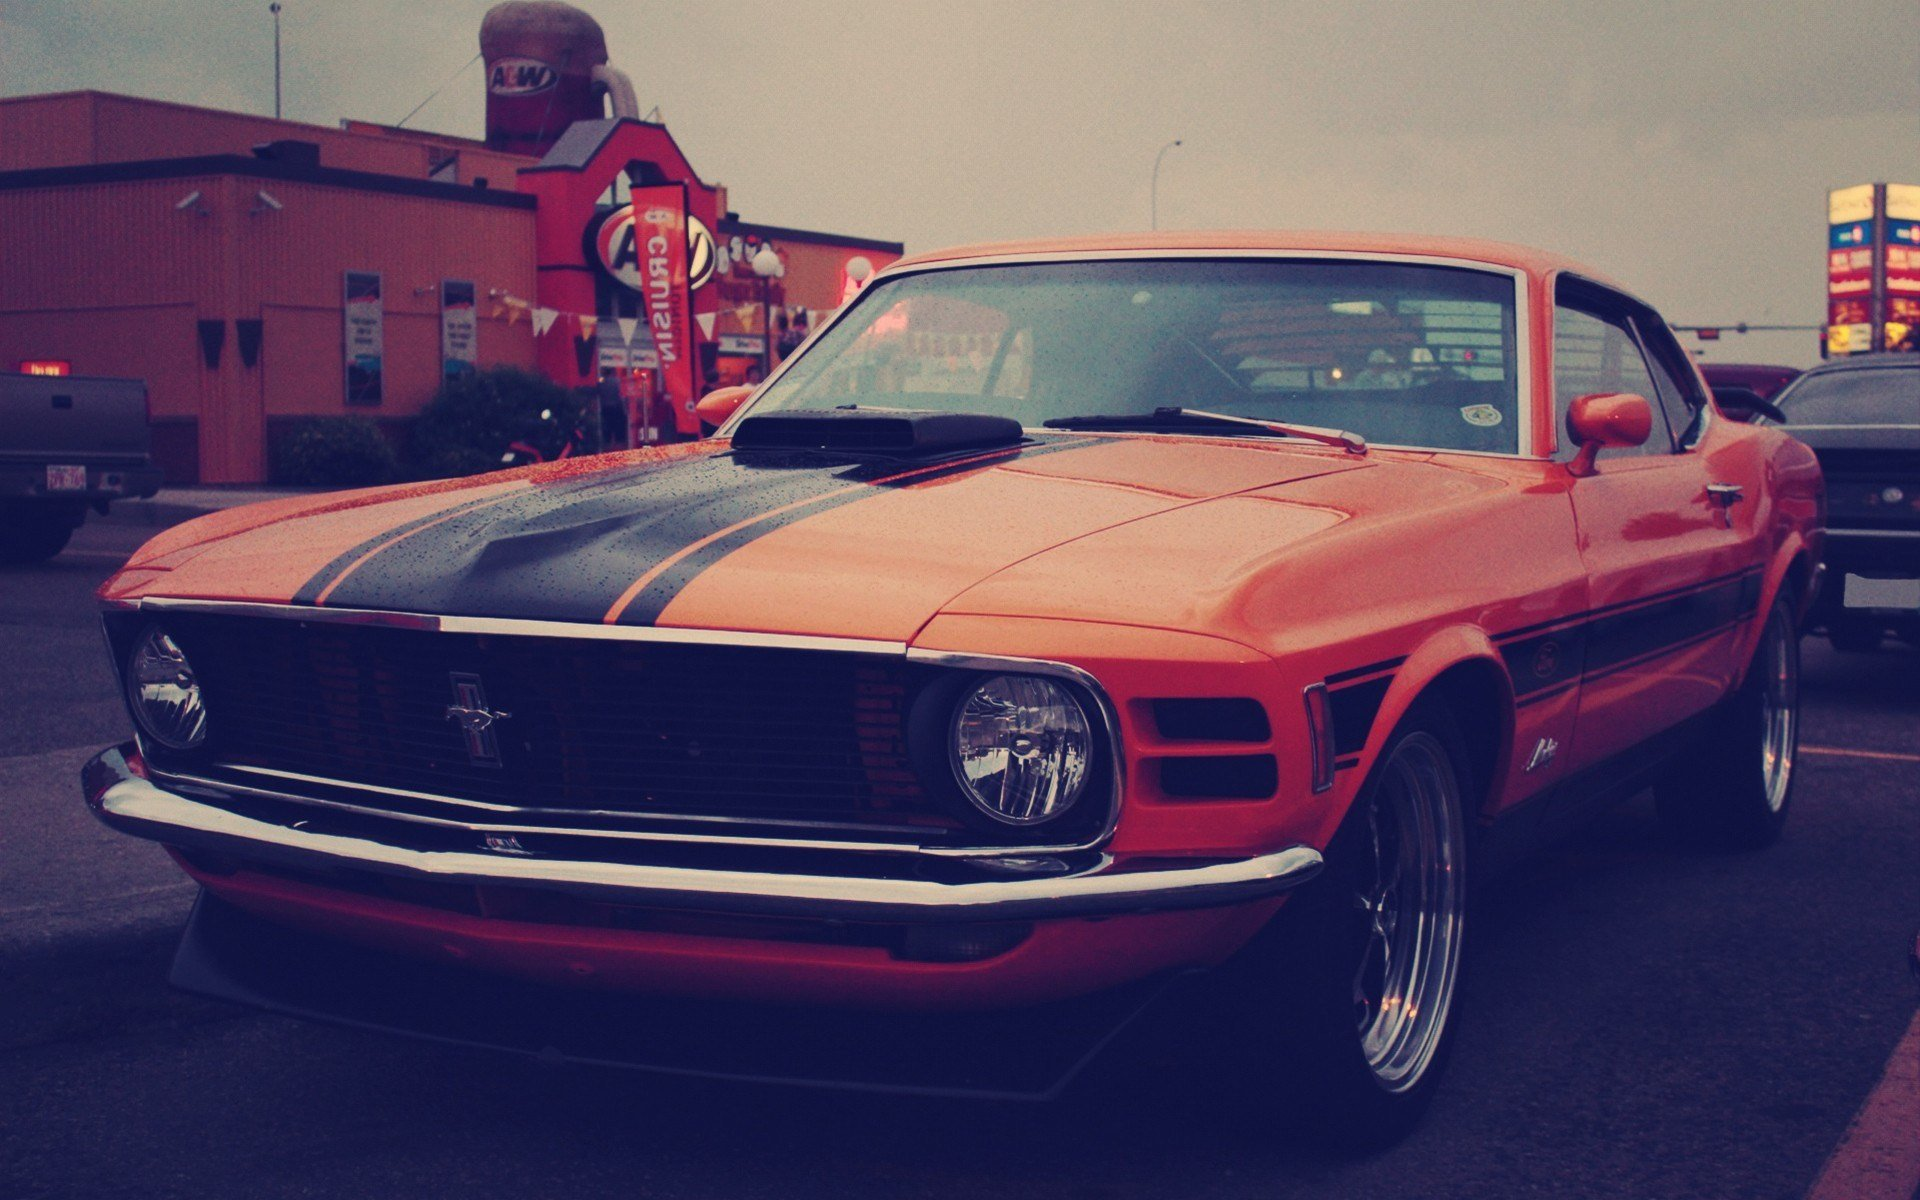 Latest Pictures Of New Ford Mustang Wallpapers Free Download